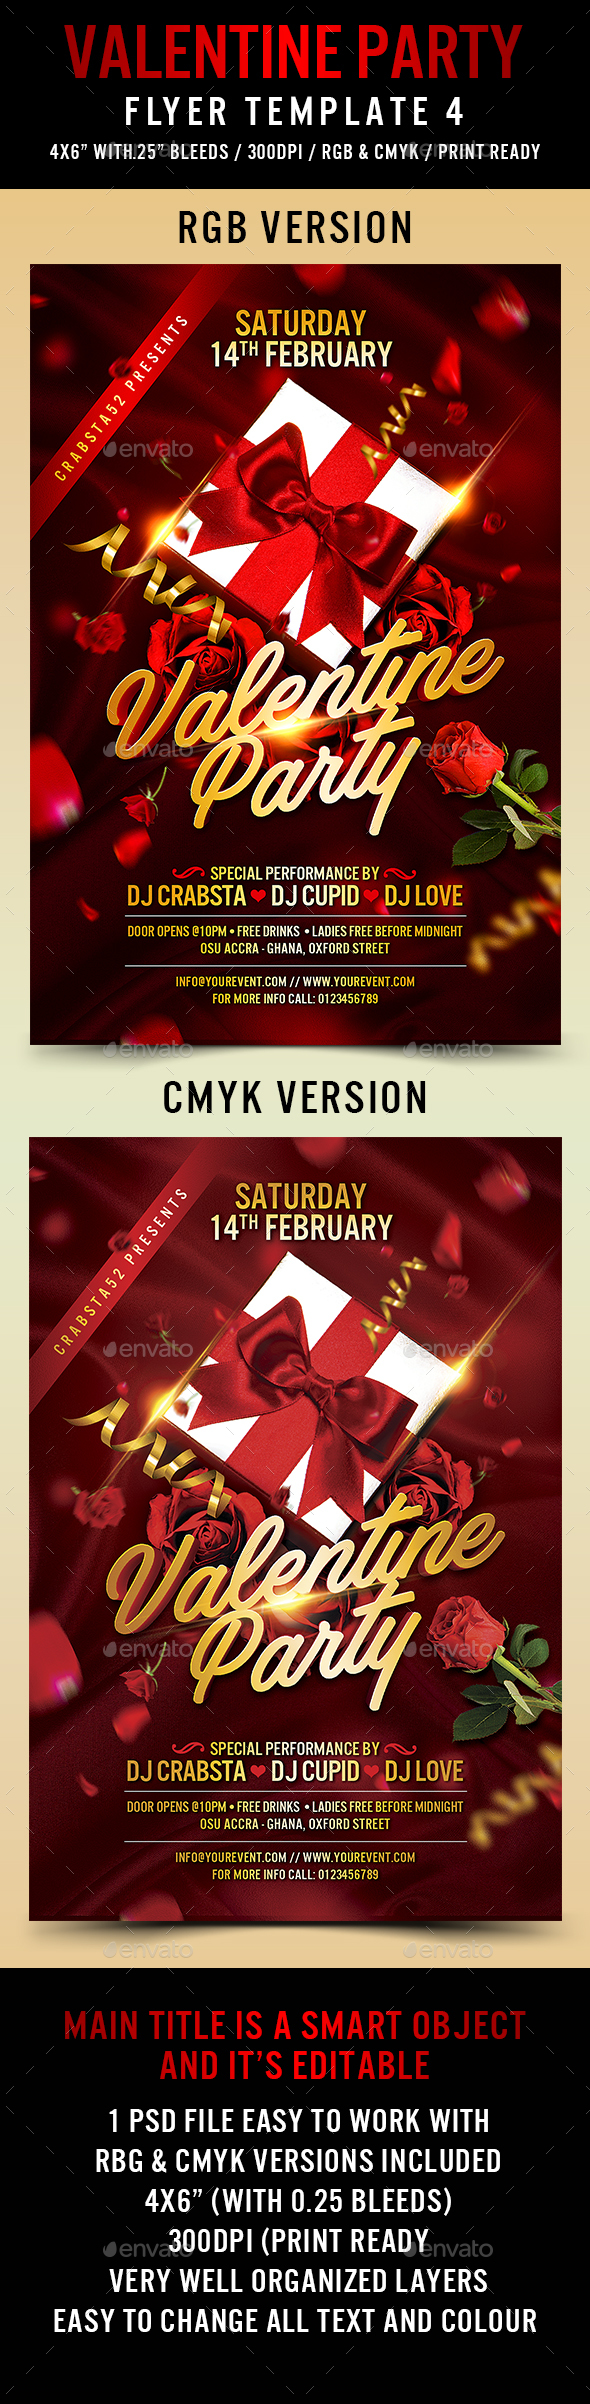 Valentine Party Flyer Template 4